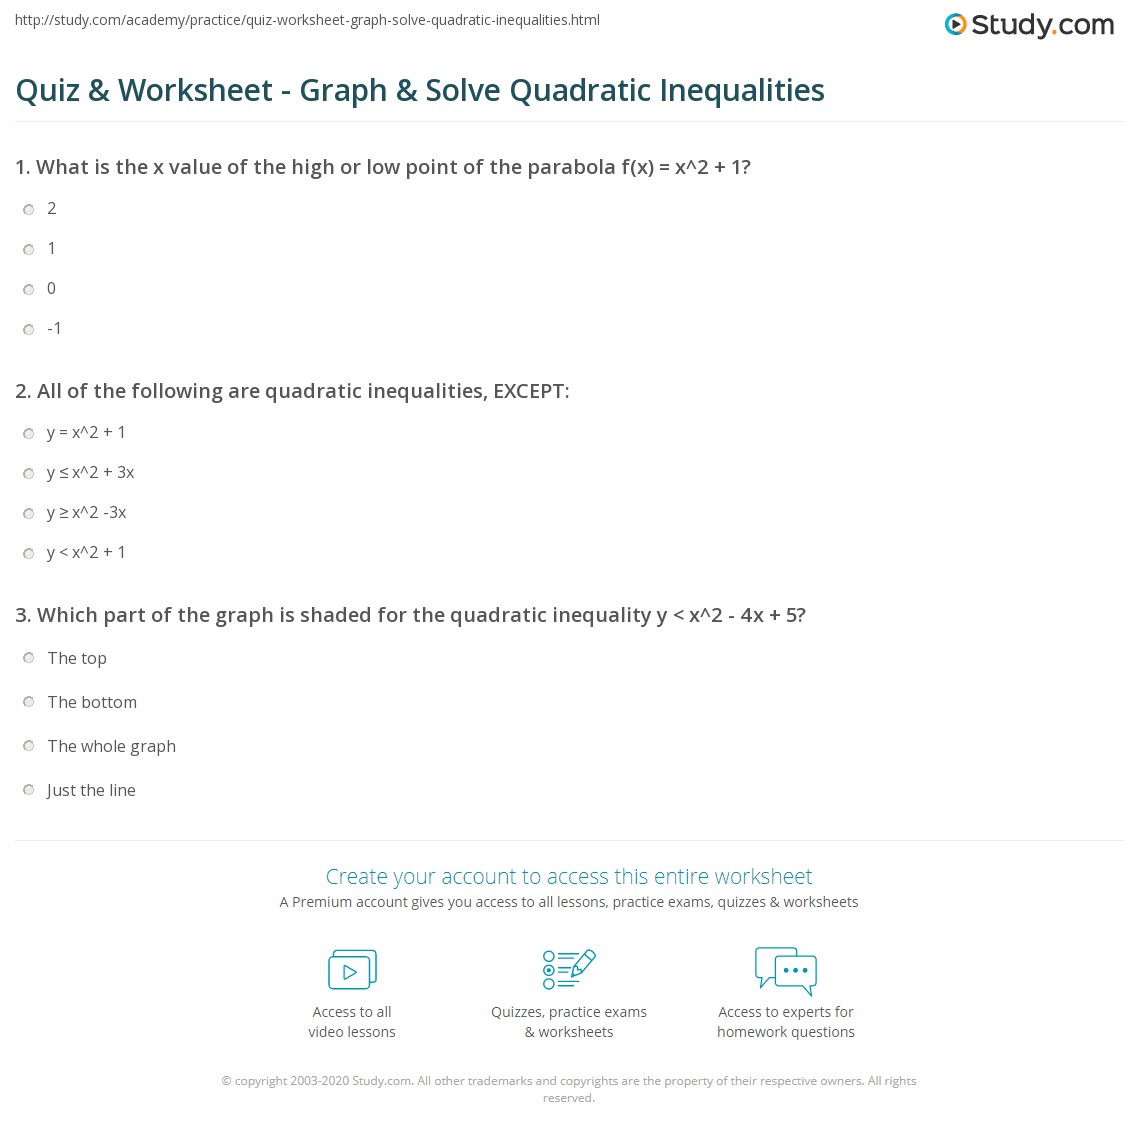 Solving Quadratic Inequalities Worksheet Answers